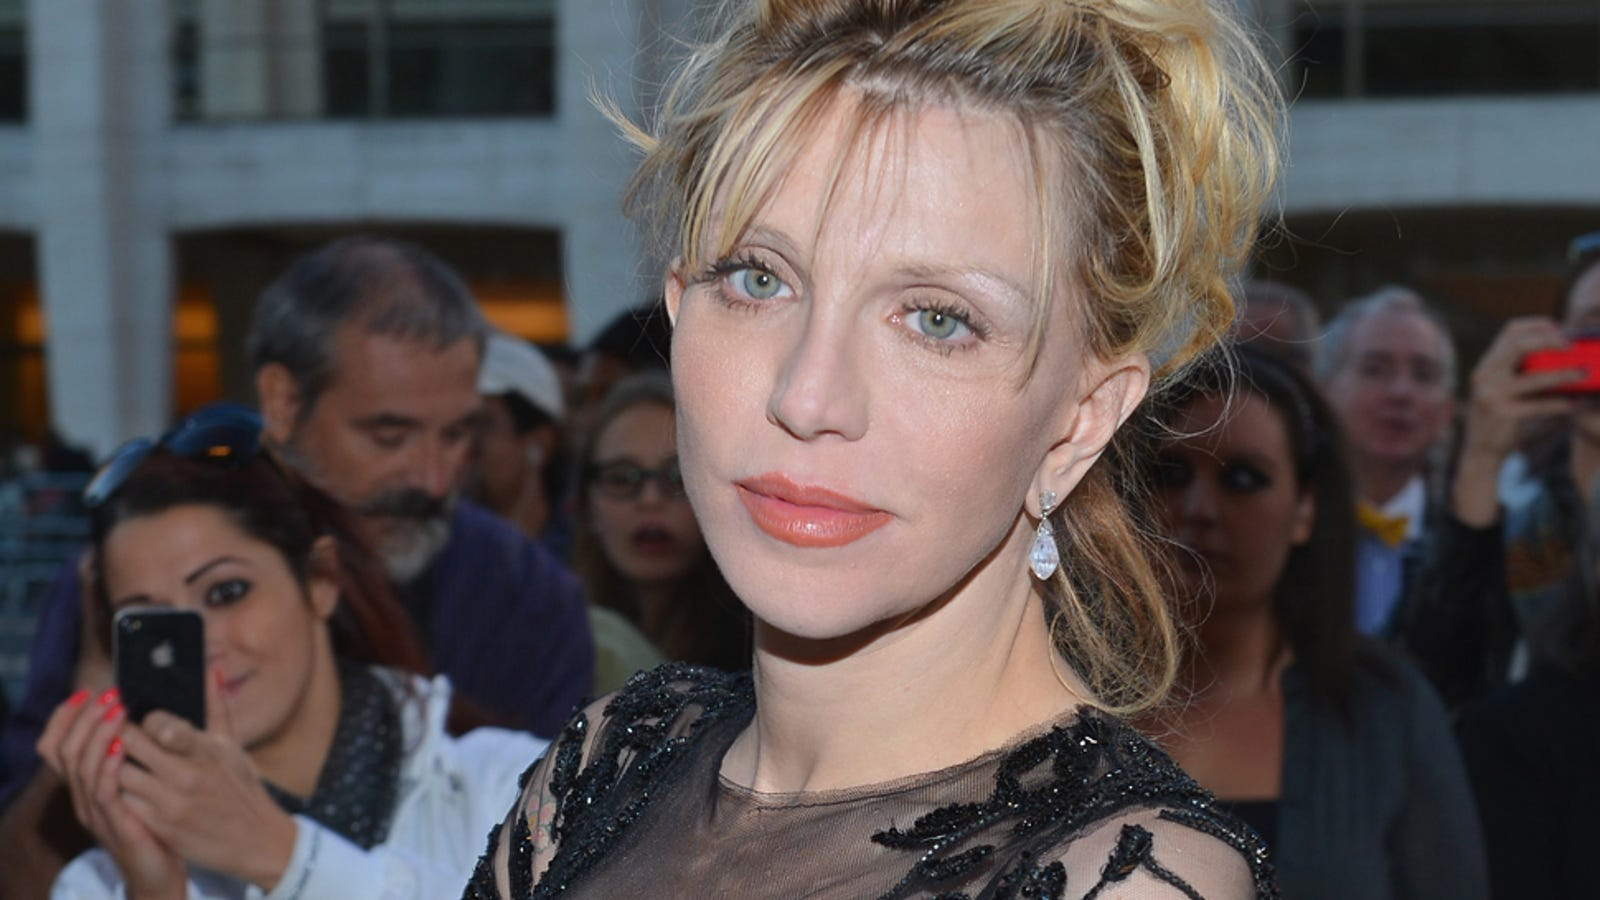 Cleavage Courtney Love nudes (41 photo), Topless, Leaked, Twitter, lingerie 2018